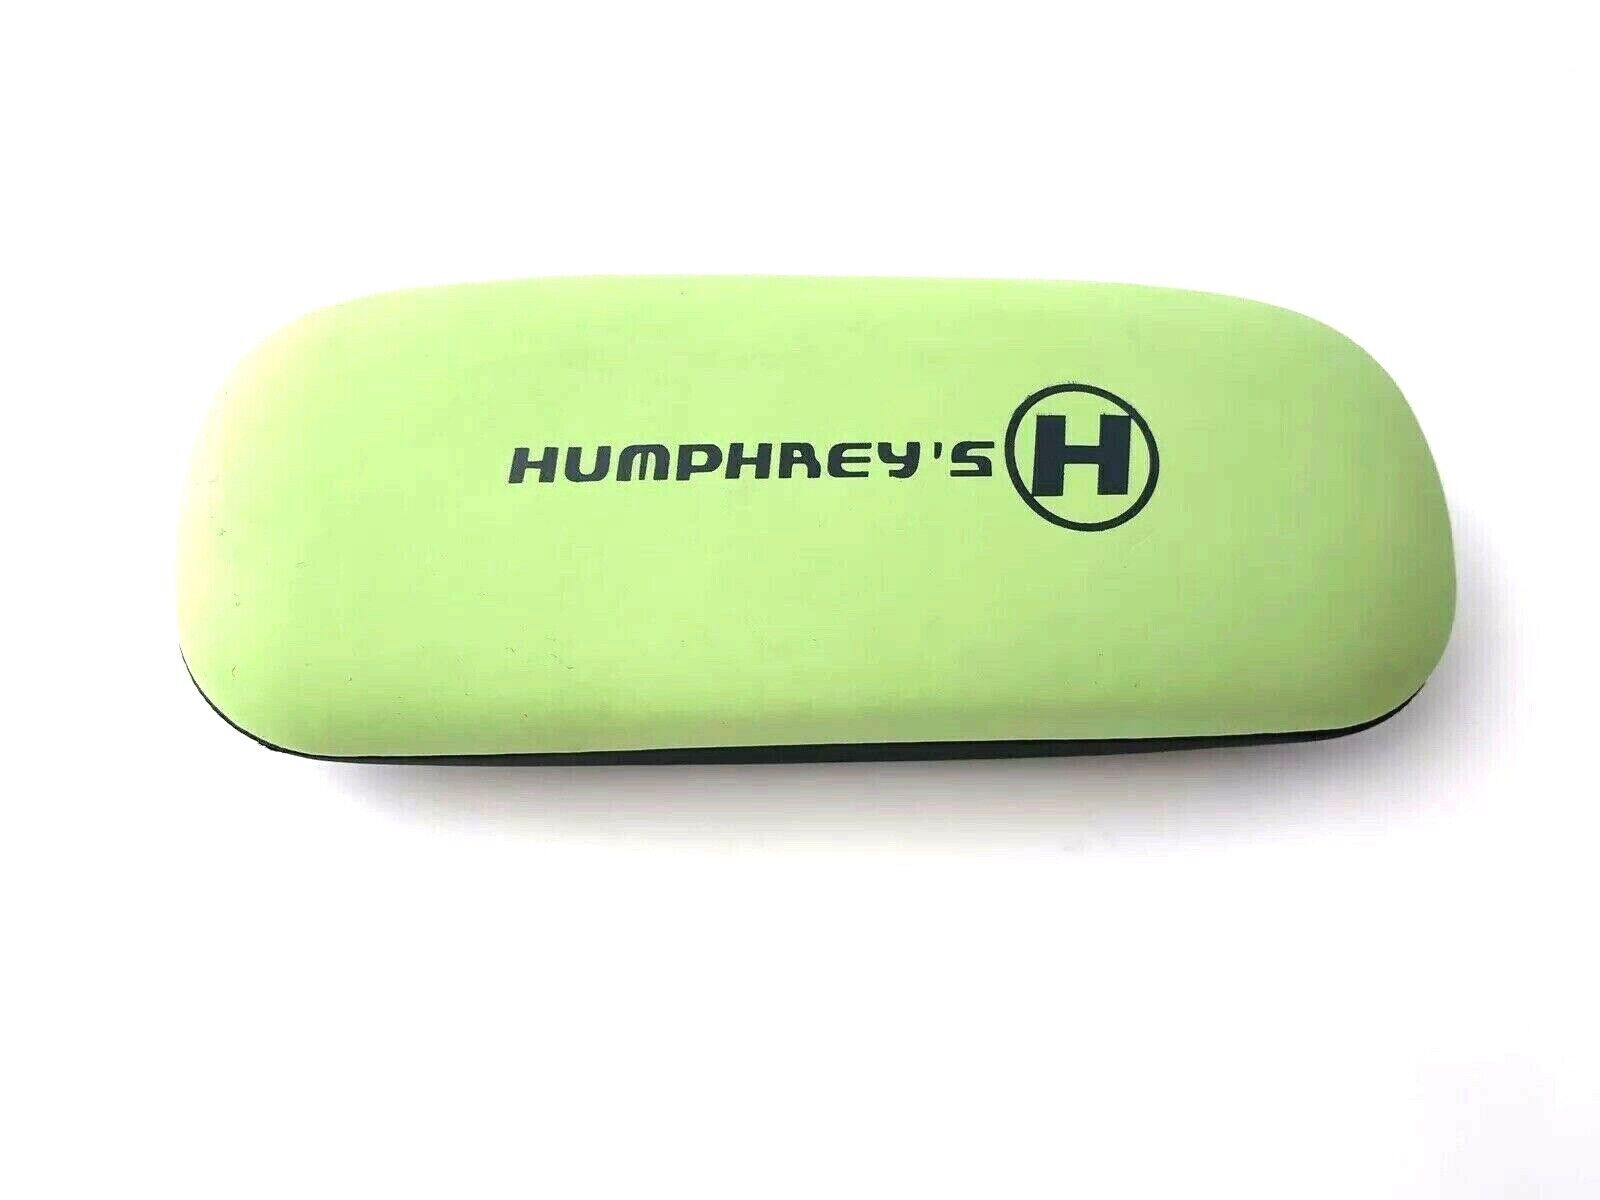 New Humphrey's Clamshell Hard Case Eyeglasses Sunglasses G